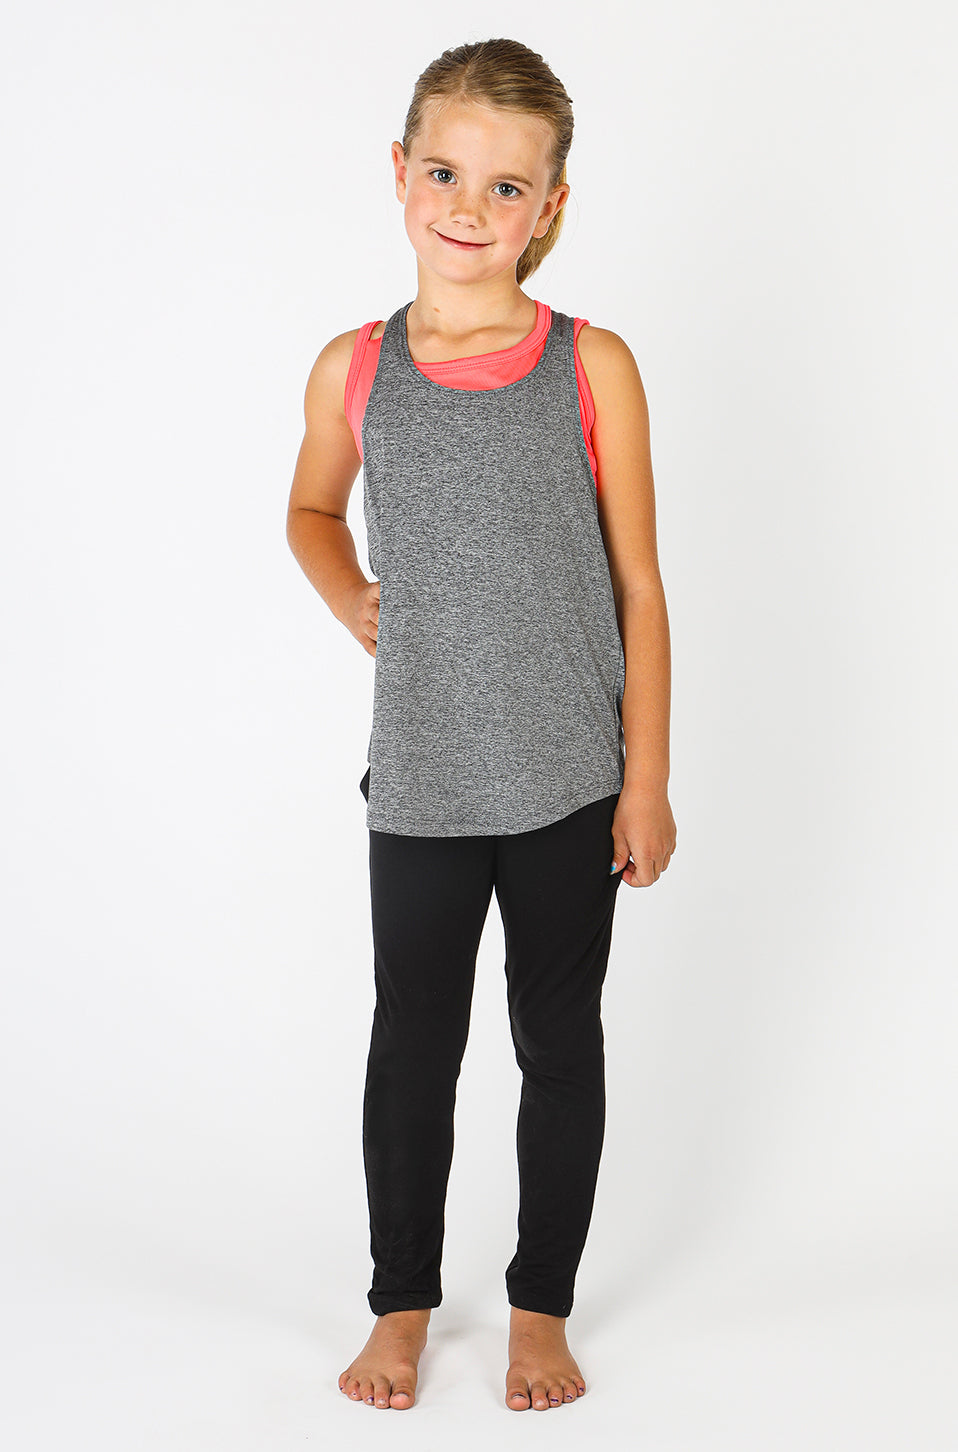 KIDS Braided Tank Top